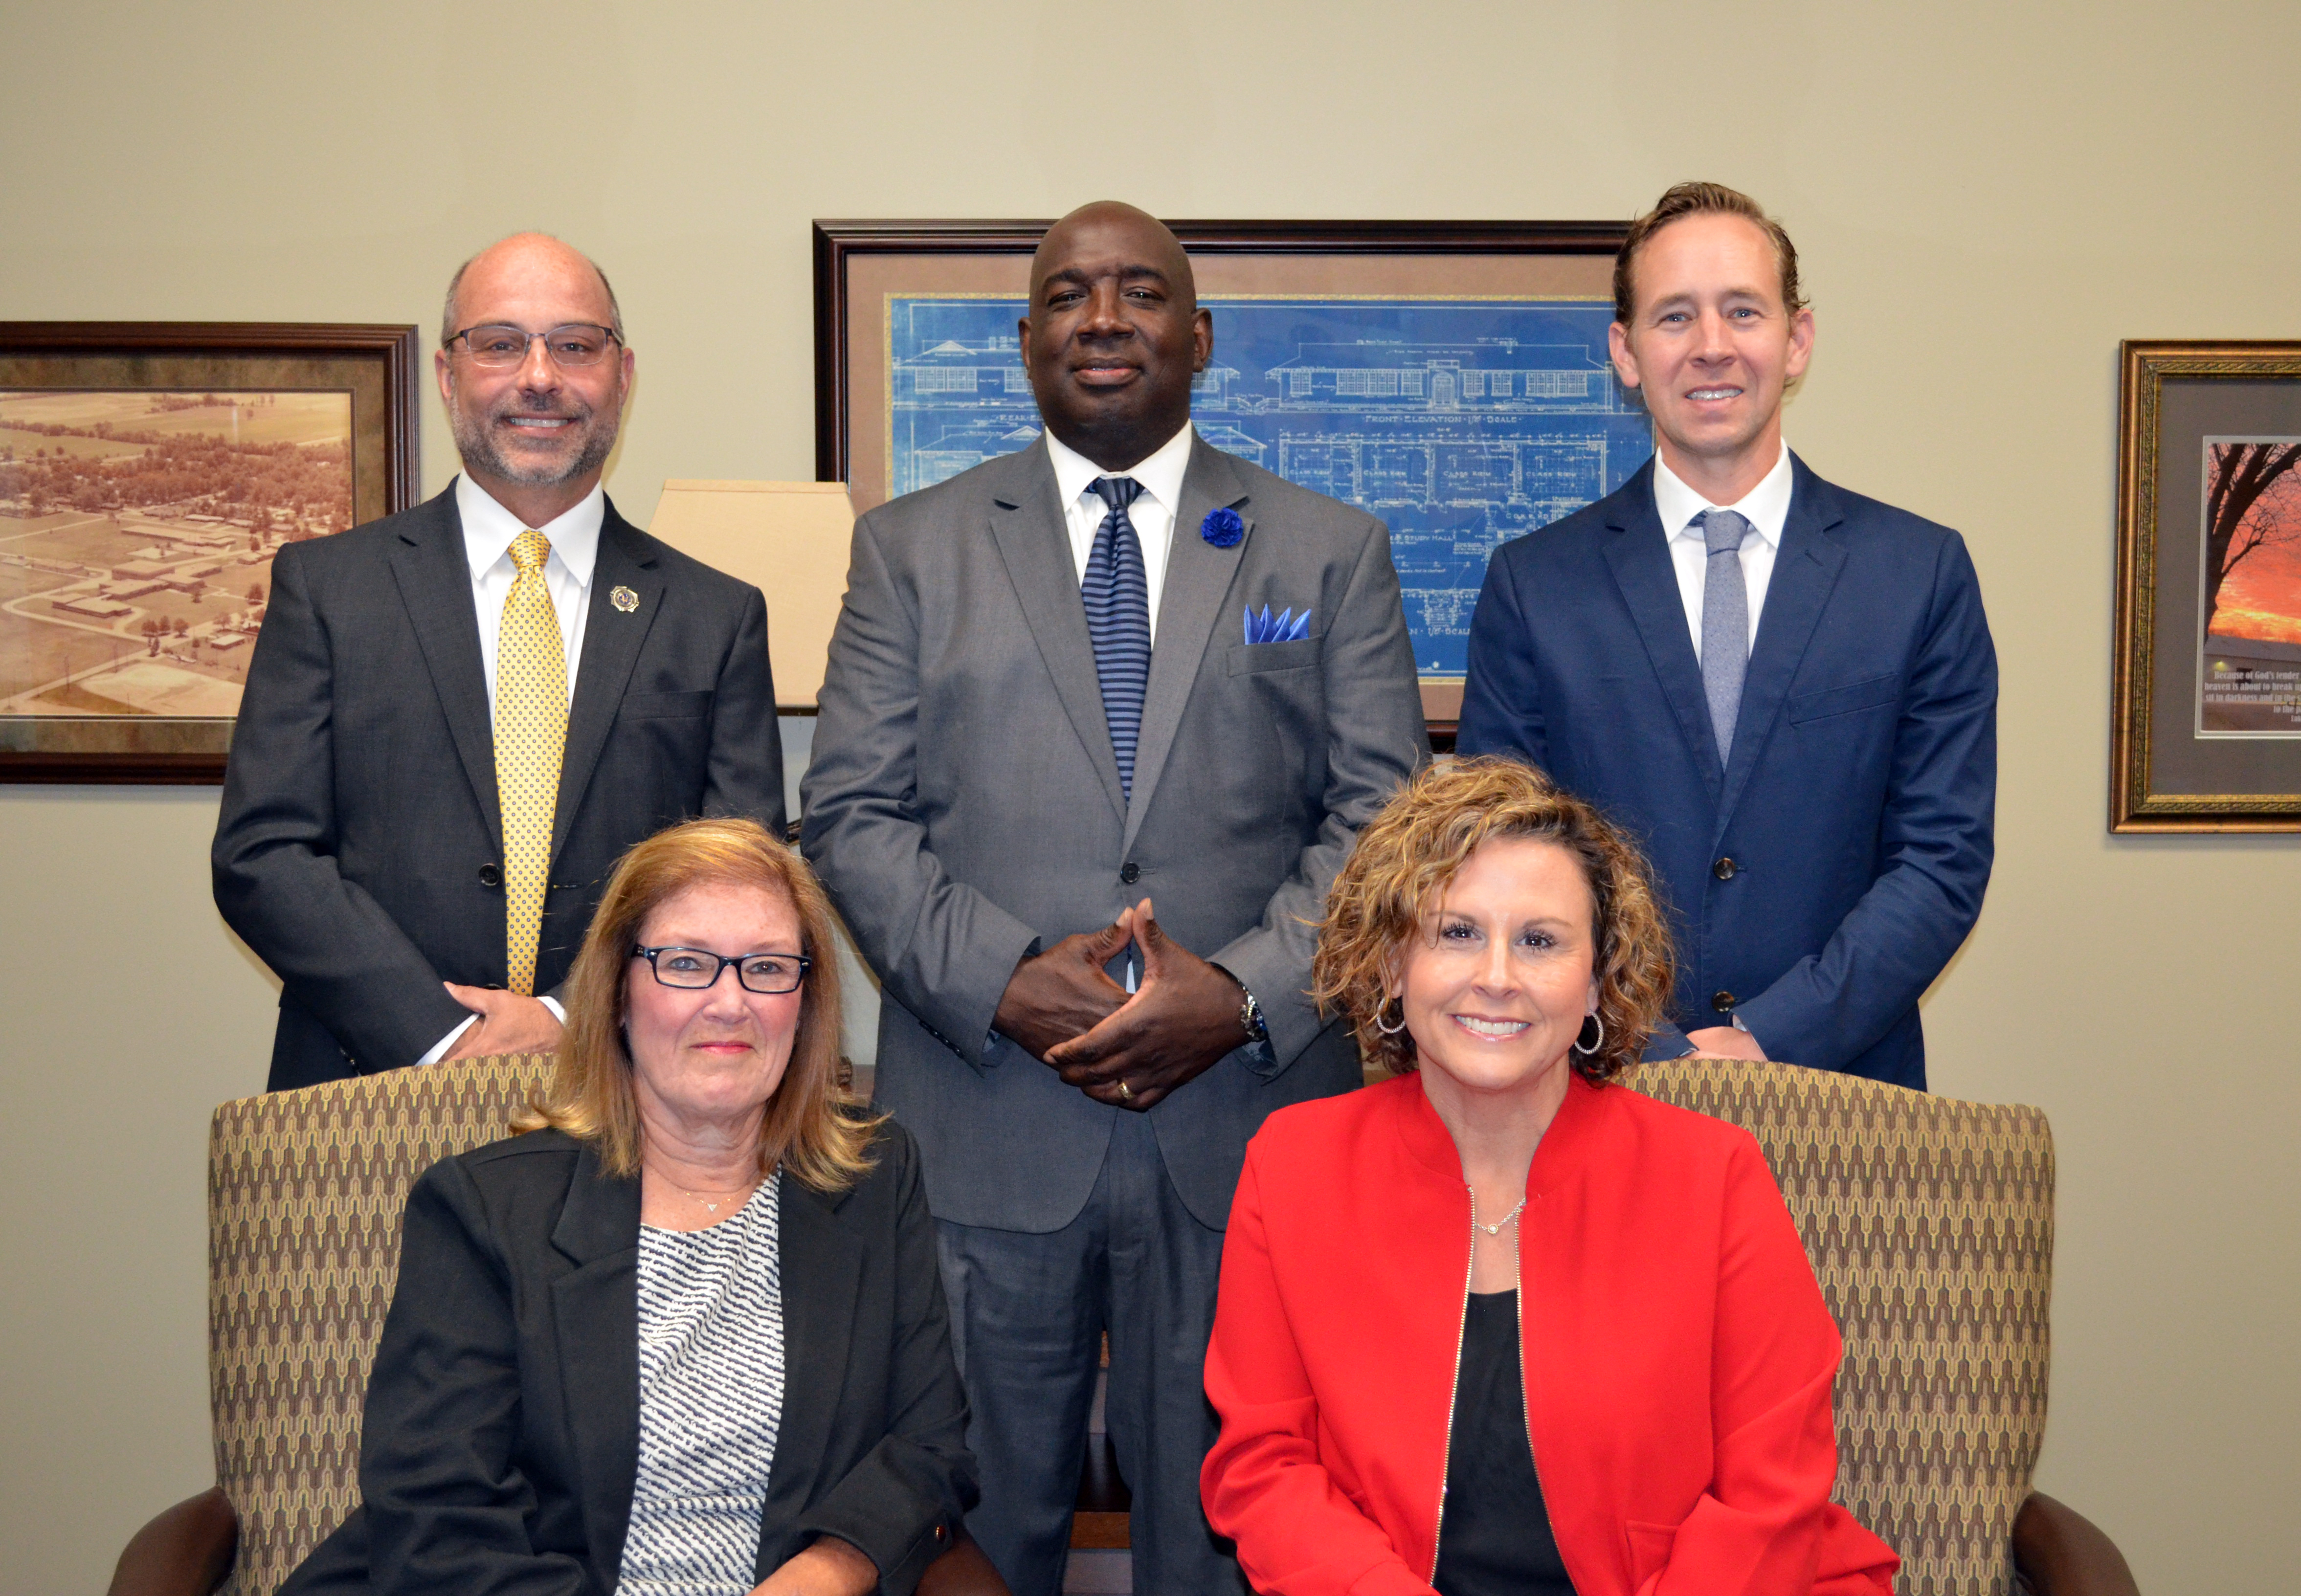 A photo of the Board Members.